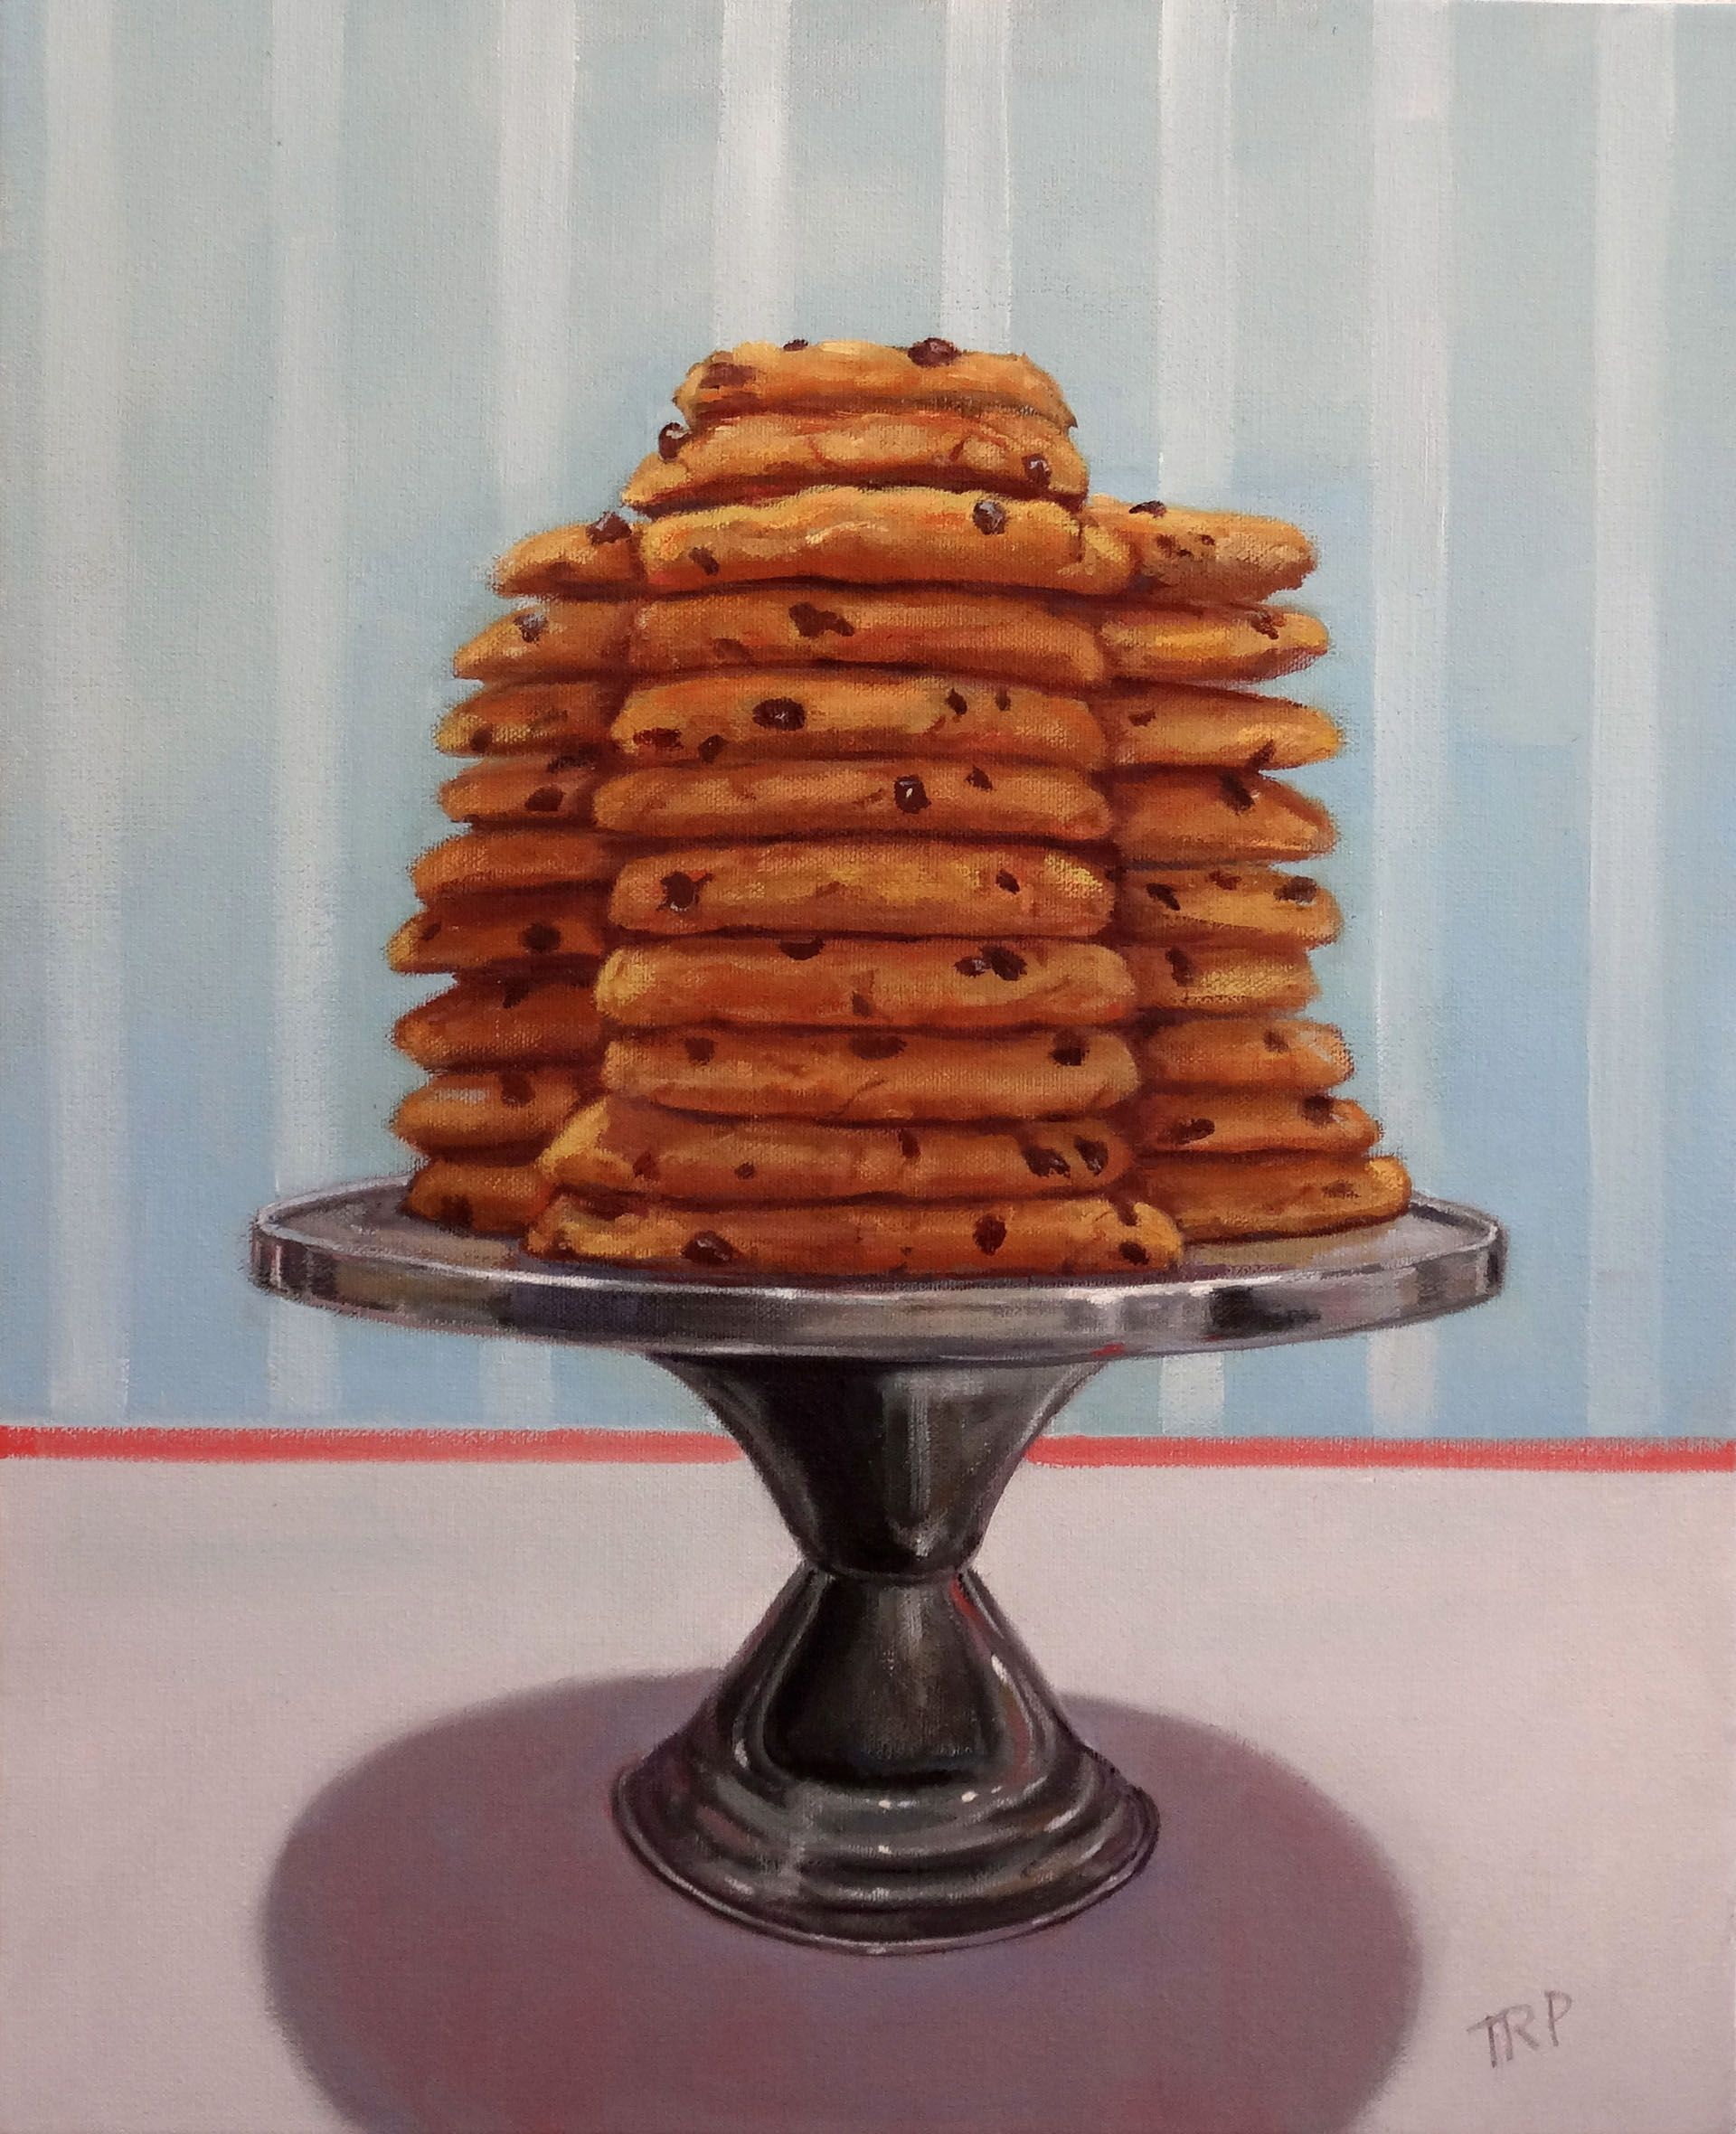 """Take One"" 20""x16"" - Oil Painting- Original painting of a stack of chcolate chip cookies on a silver cake stand by Terry Romero Paul"